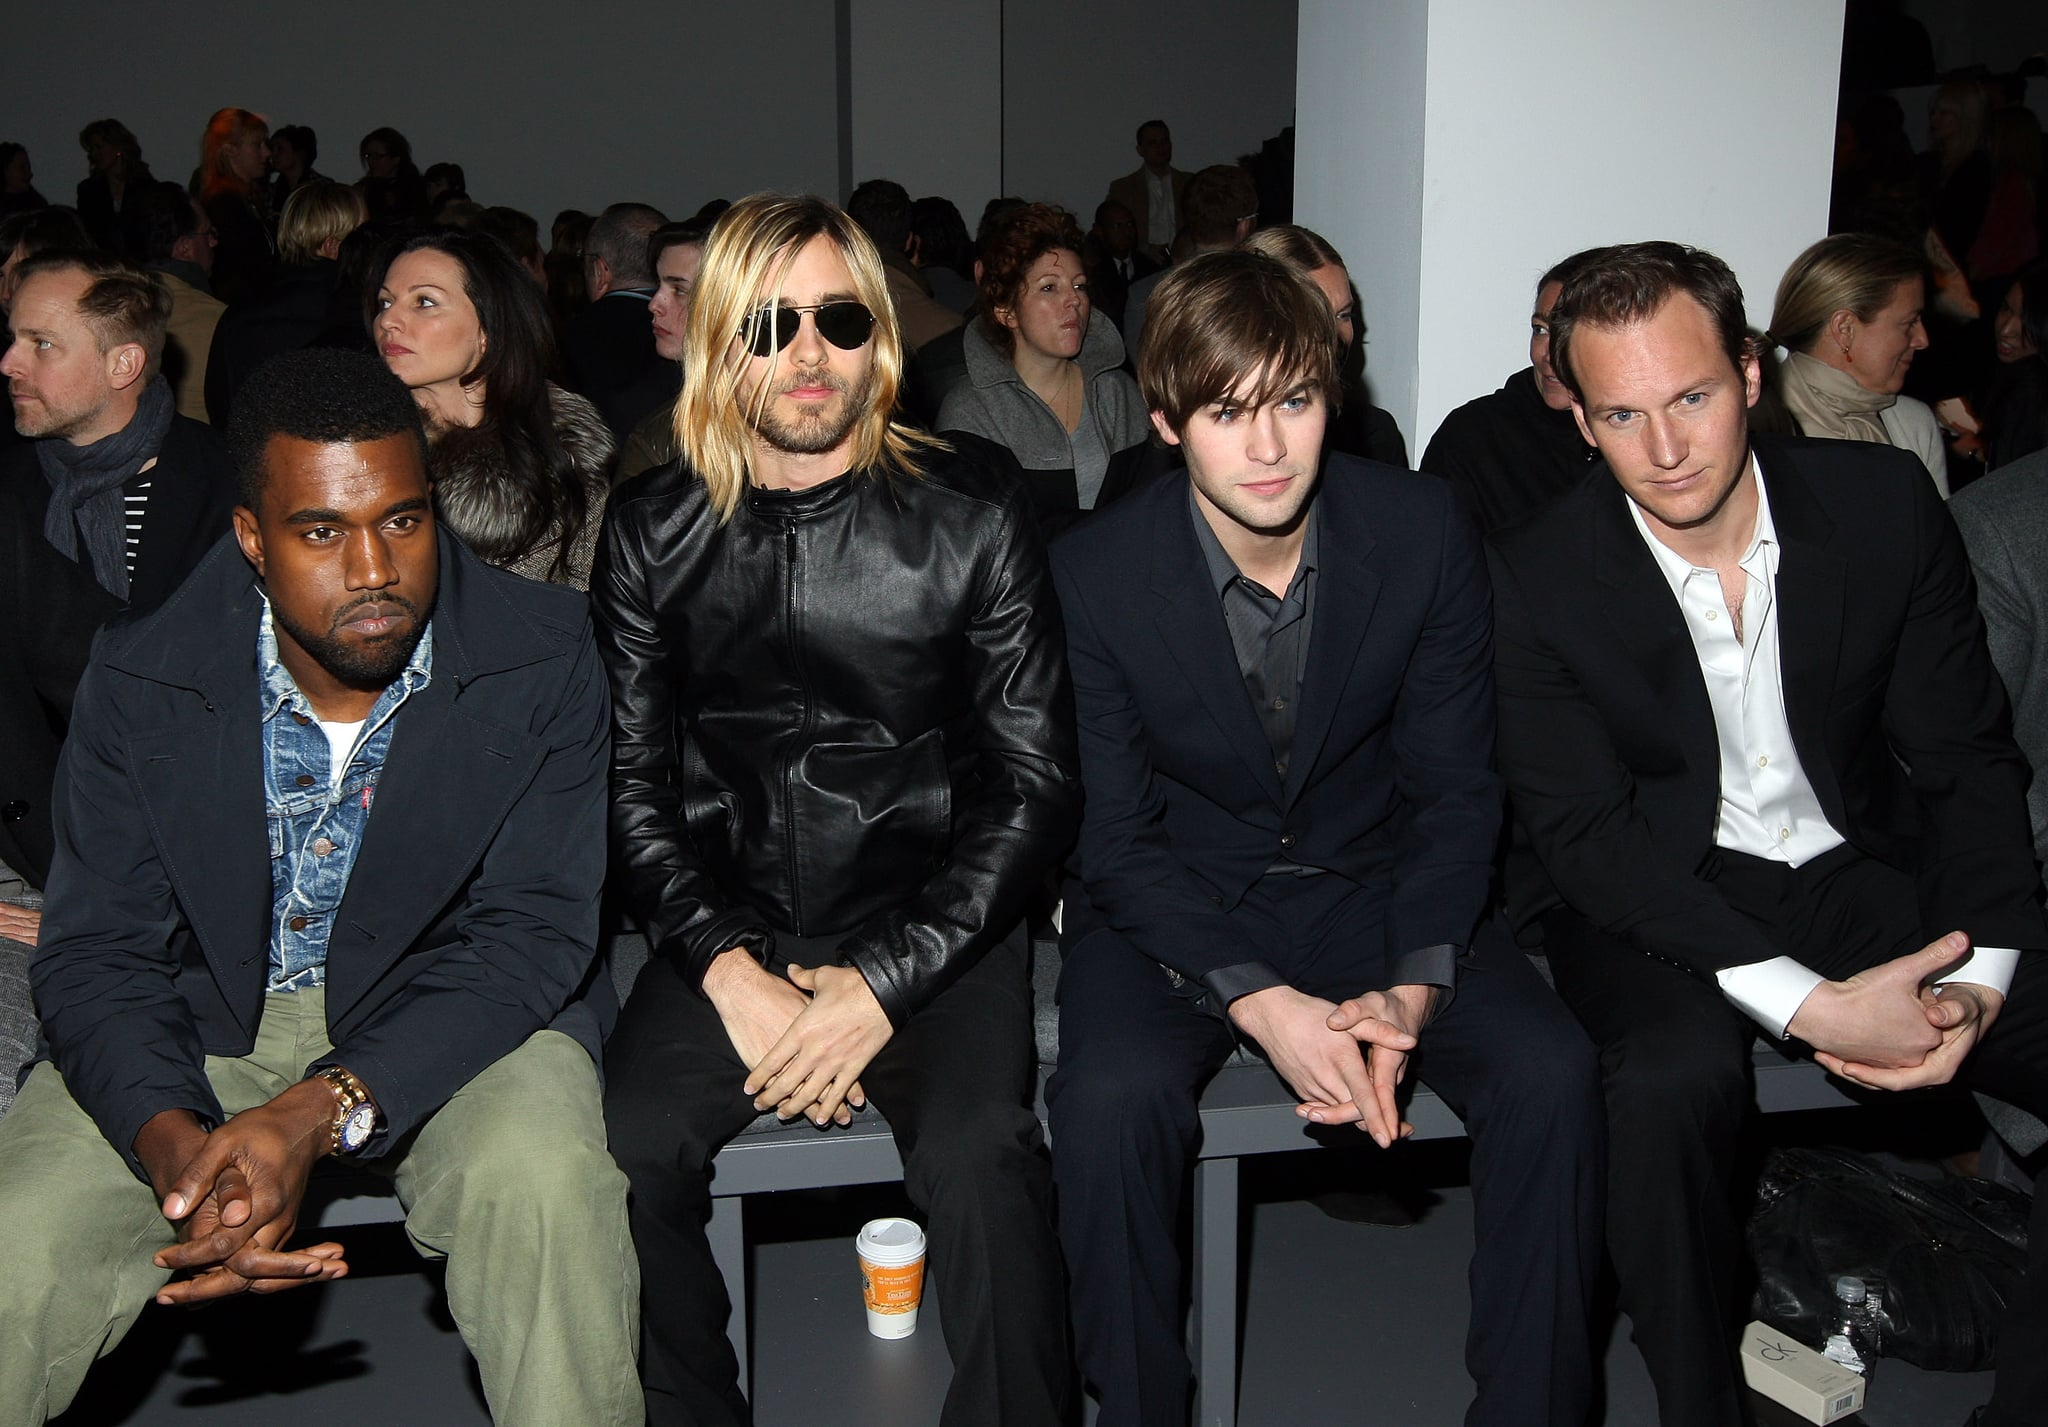 Kanye West, Jared Leto, Chase Crawford, and Patrick Wilson watched Calvin Klein in February 2009.